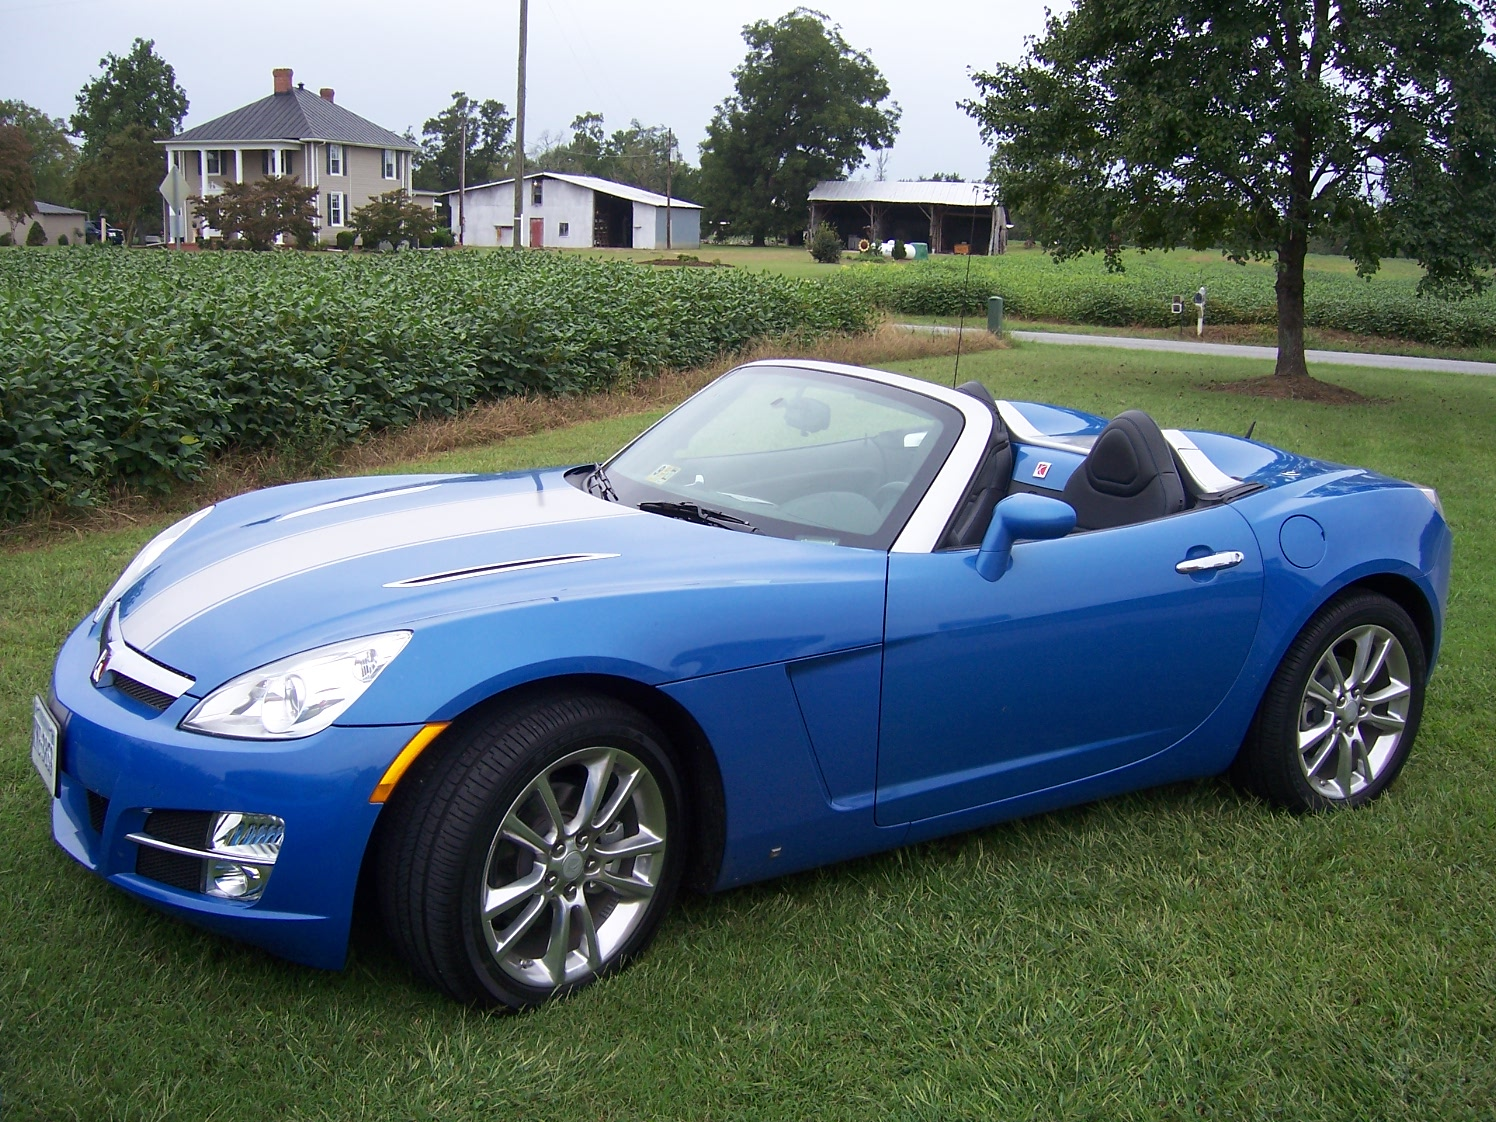 hydro blue 2009 limited edition saturn sky for sale saturn sky forums saturn sky forum. Black Bedroom Furniture Sets. Home Design Ideas